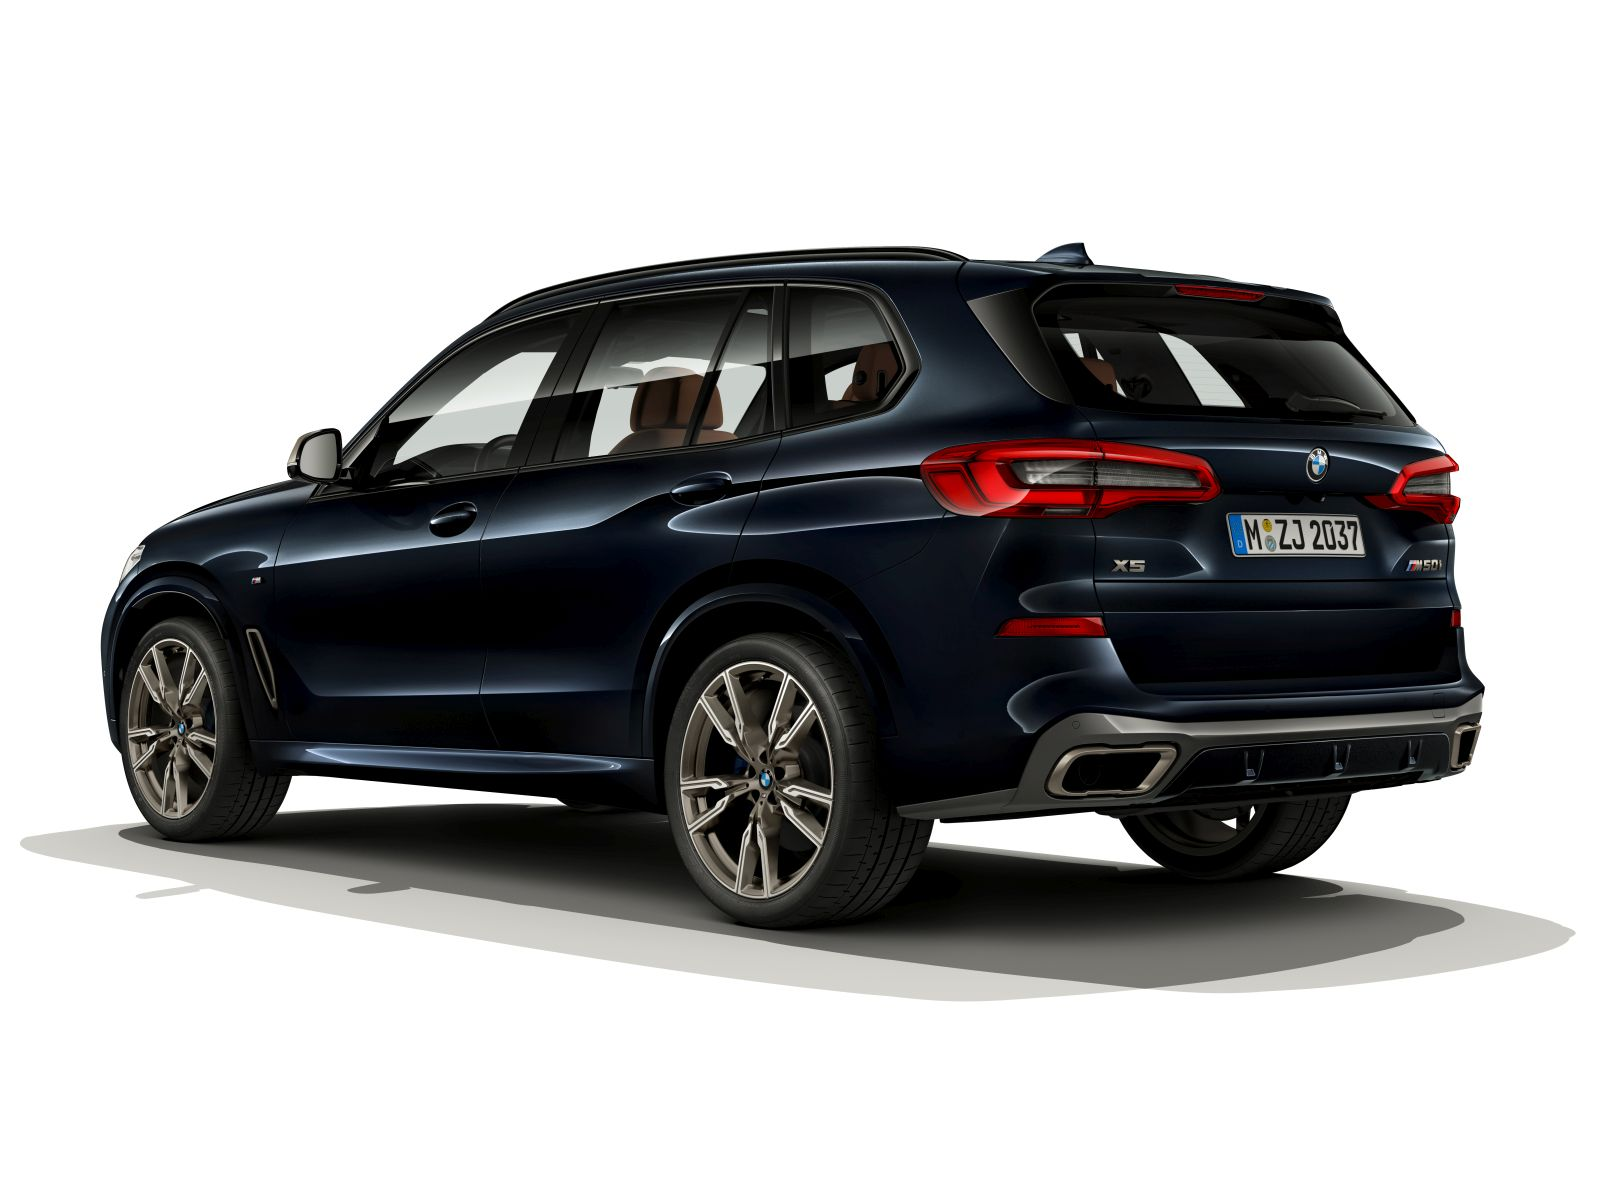 bmw x5 m50i a x7 m50i prich dzaj s v8. Black Bedroom Furniture Sets. Home Design Ideas